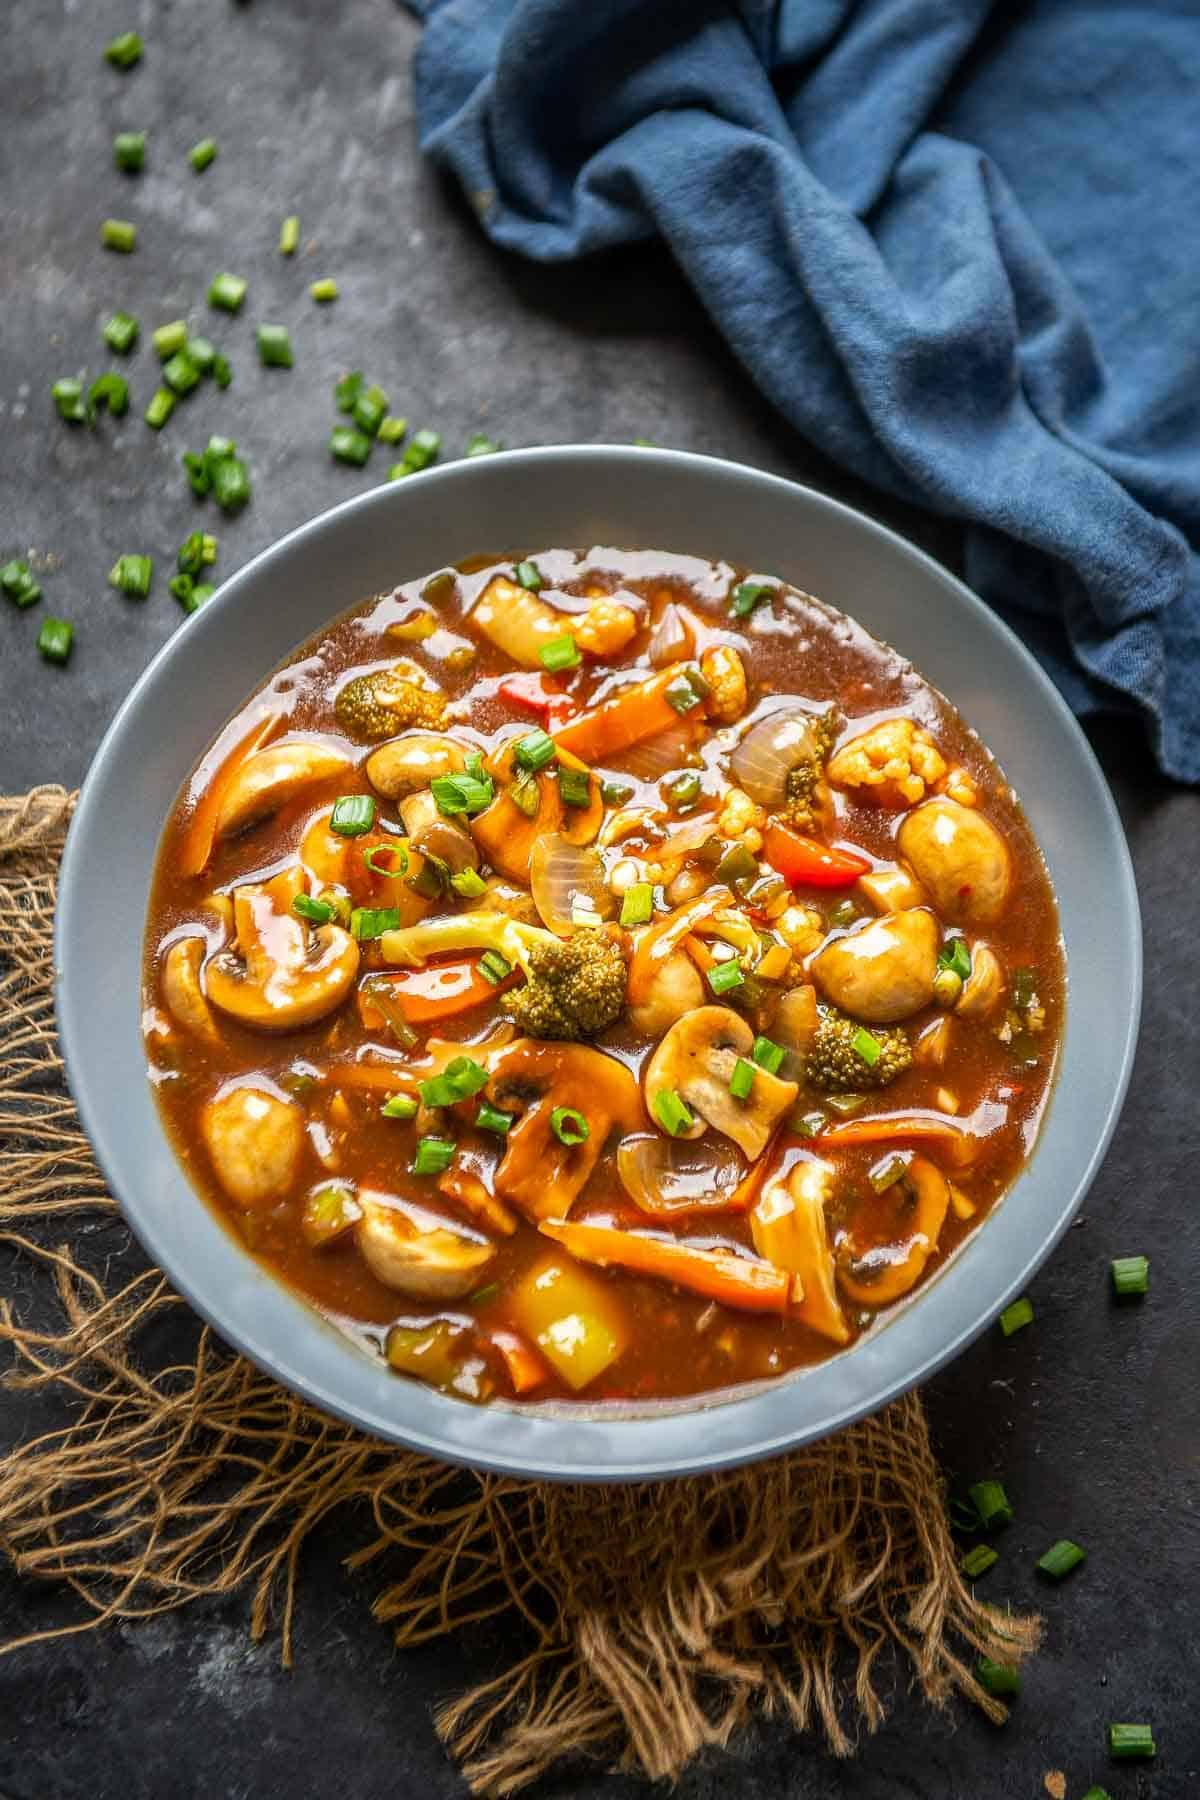 Vegetables in hot garlic sauce served in a bowl.